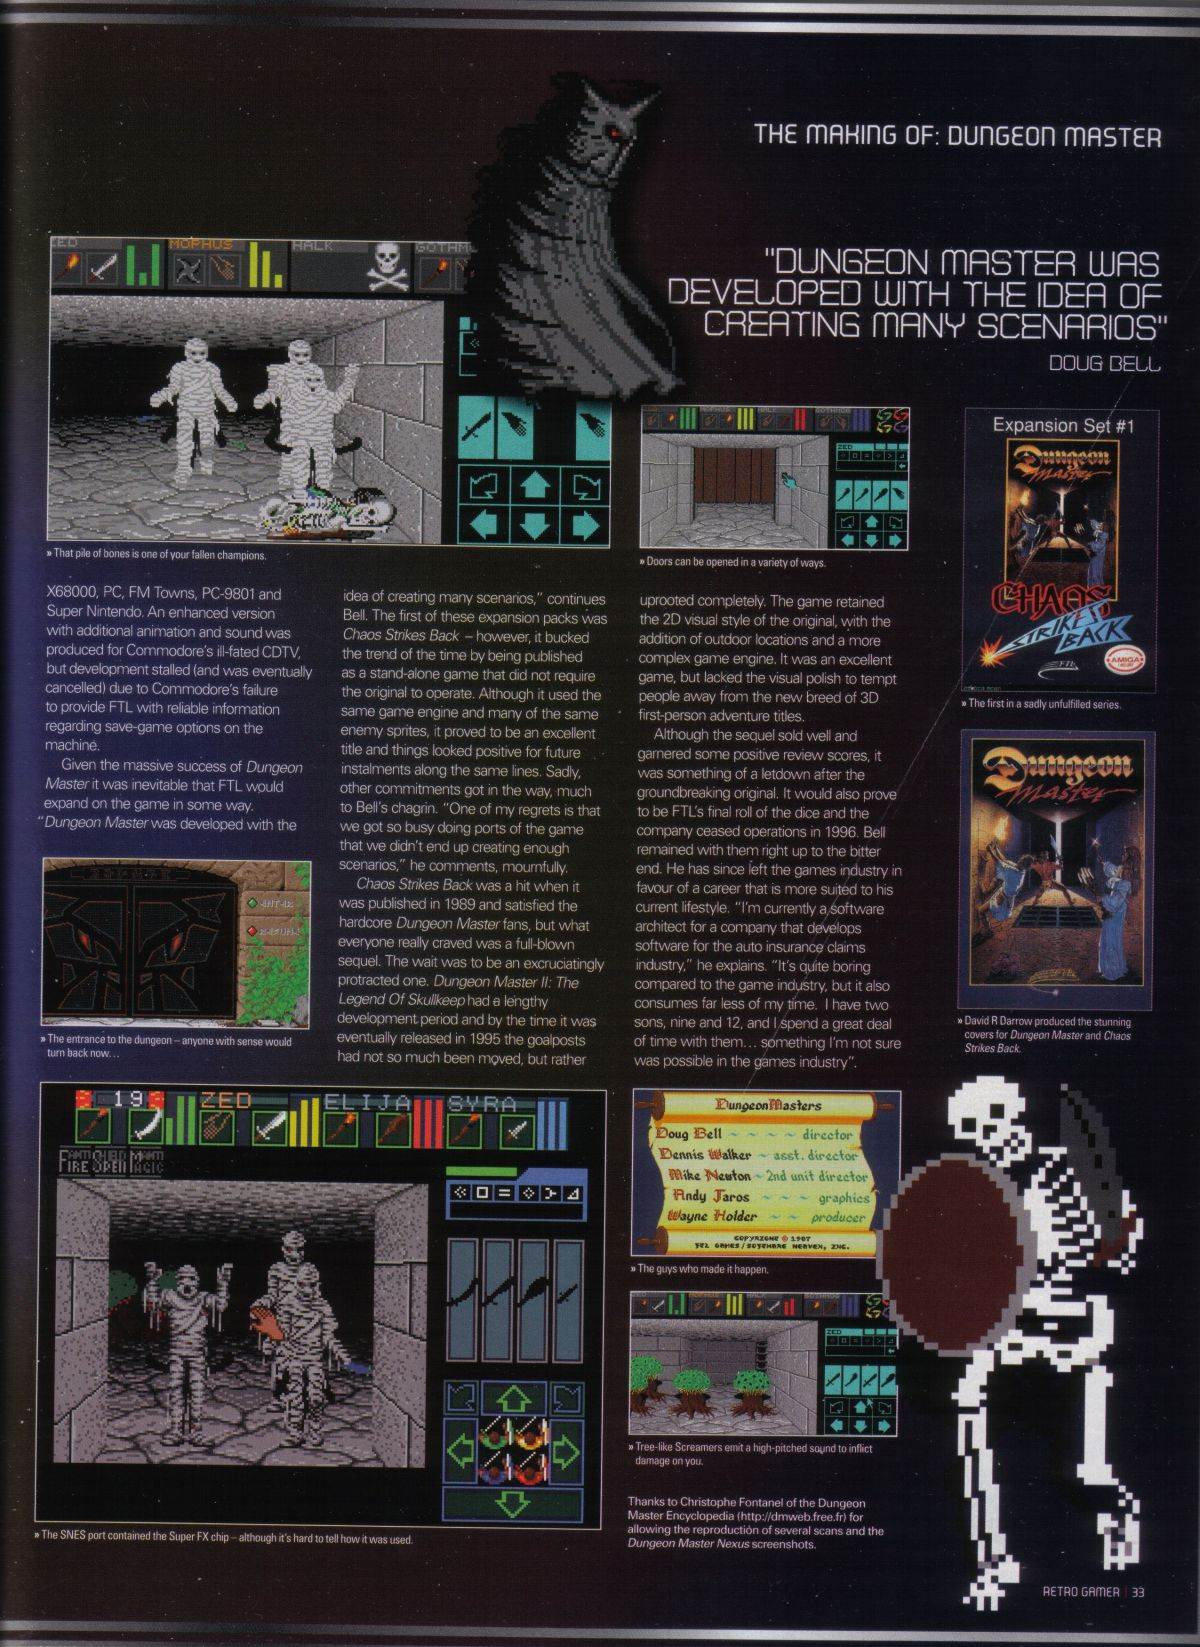 An article titled 'The Making of... Dungeon Master' published in British magazine 'Retro Gamer', Issue #34, February 2007, Pages 33